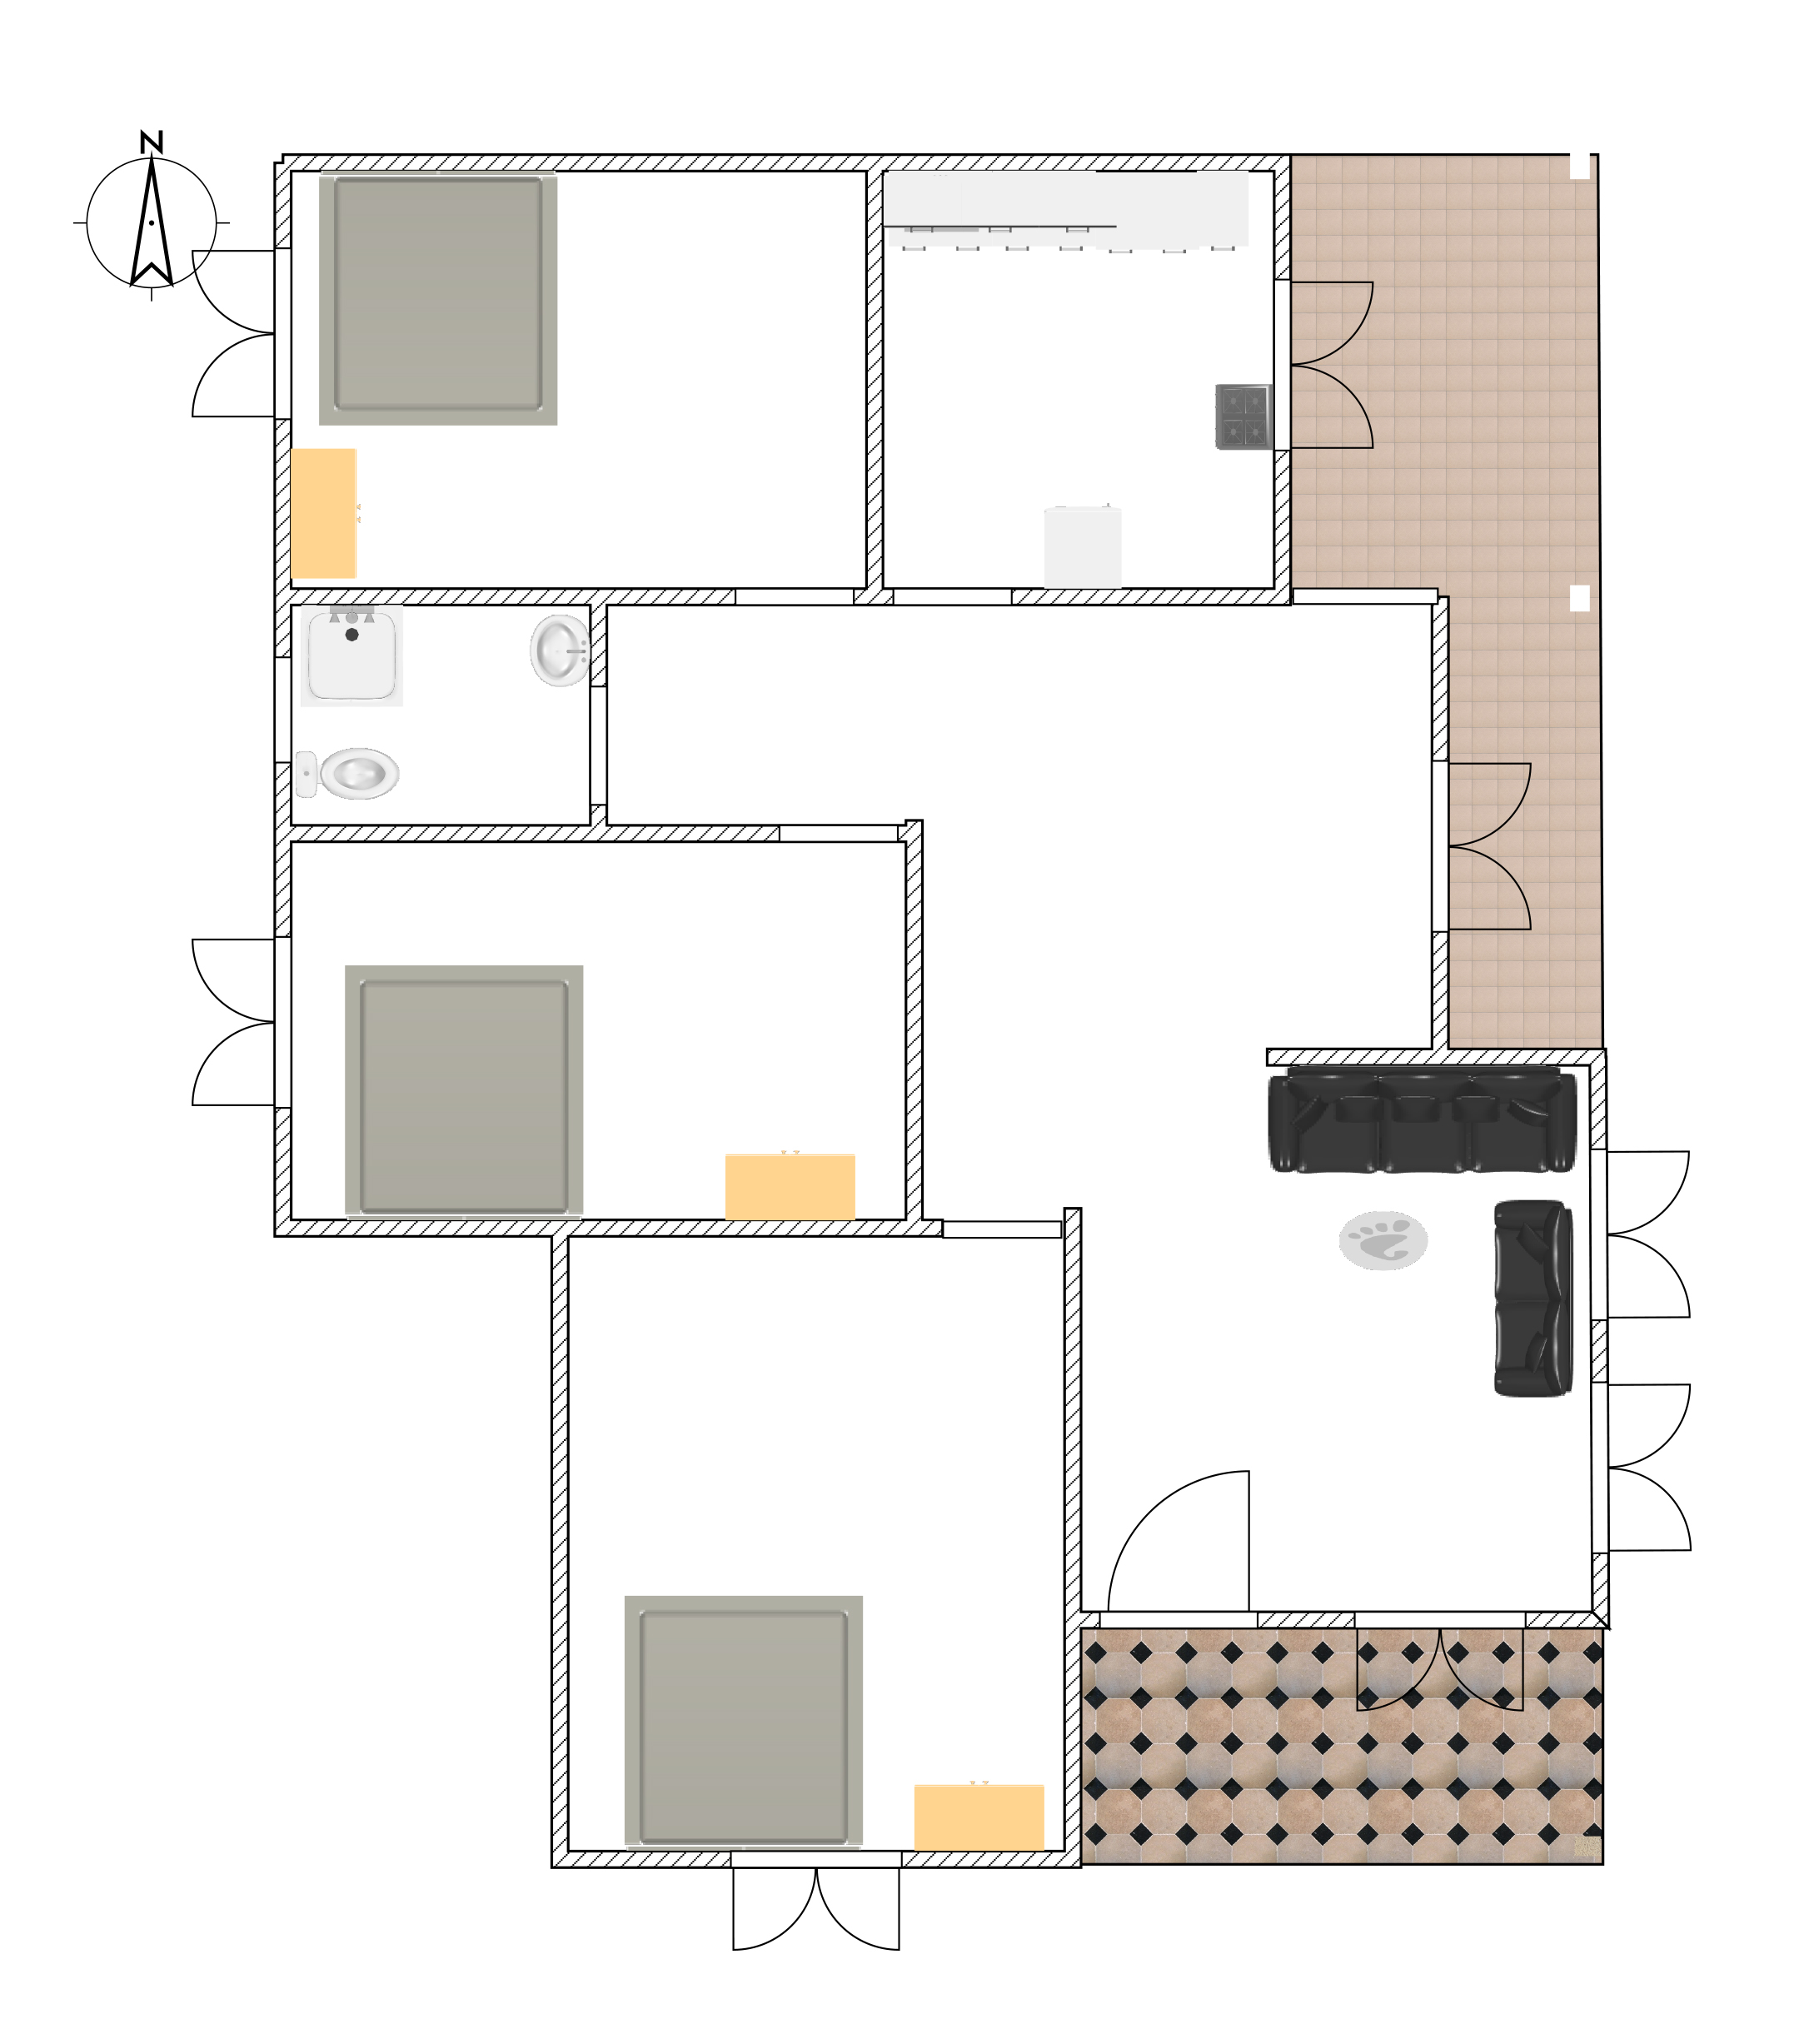 Three bed room single story 3d house plan downloaf with for House plan cad file